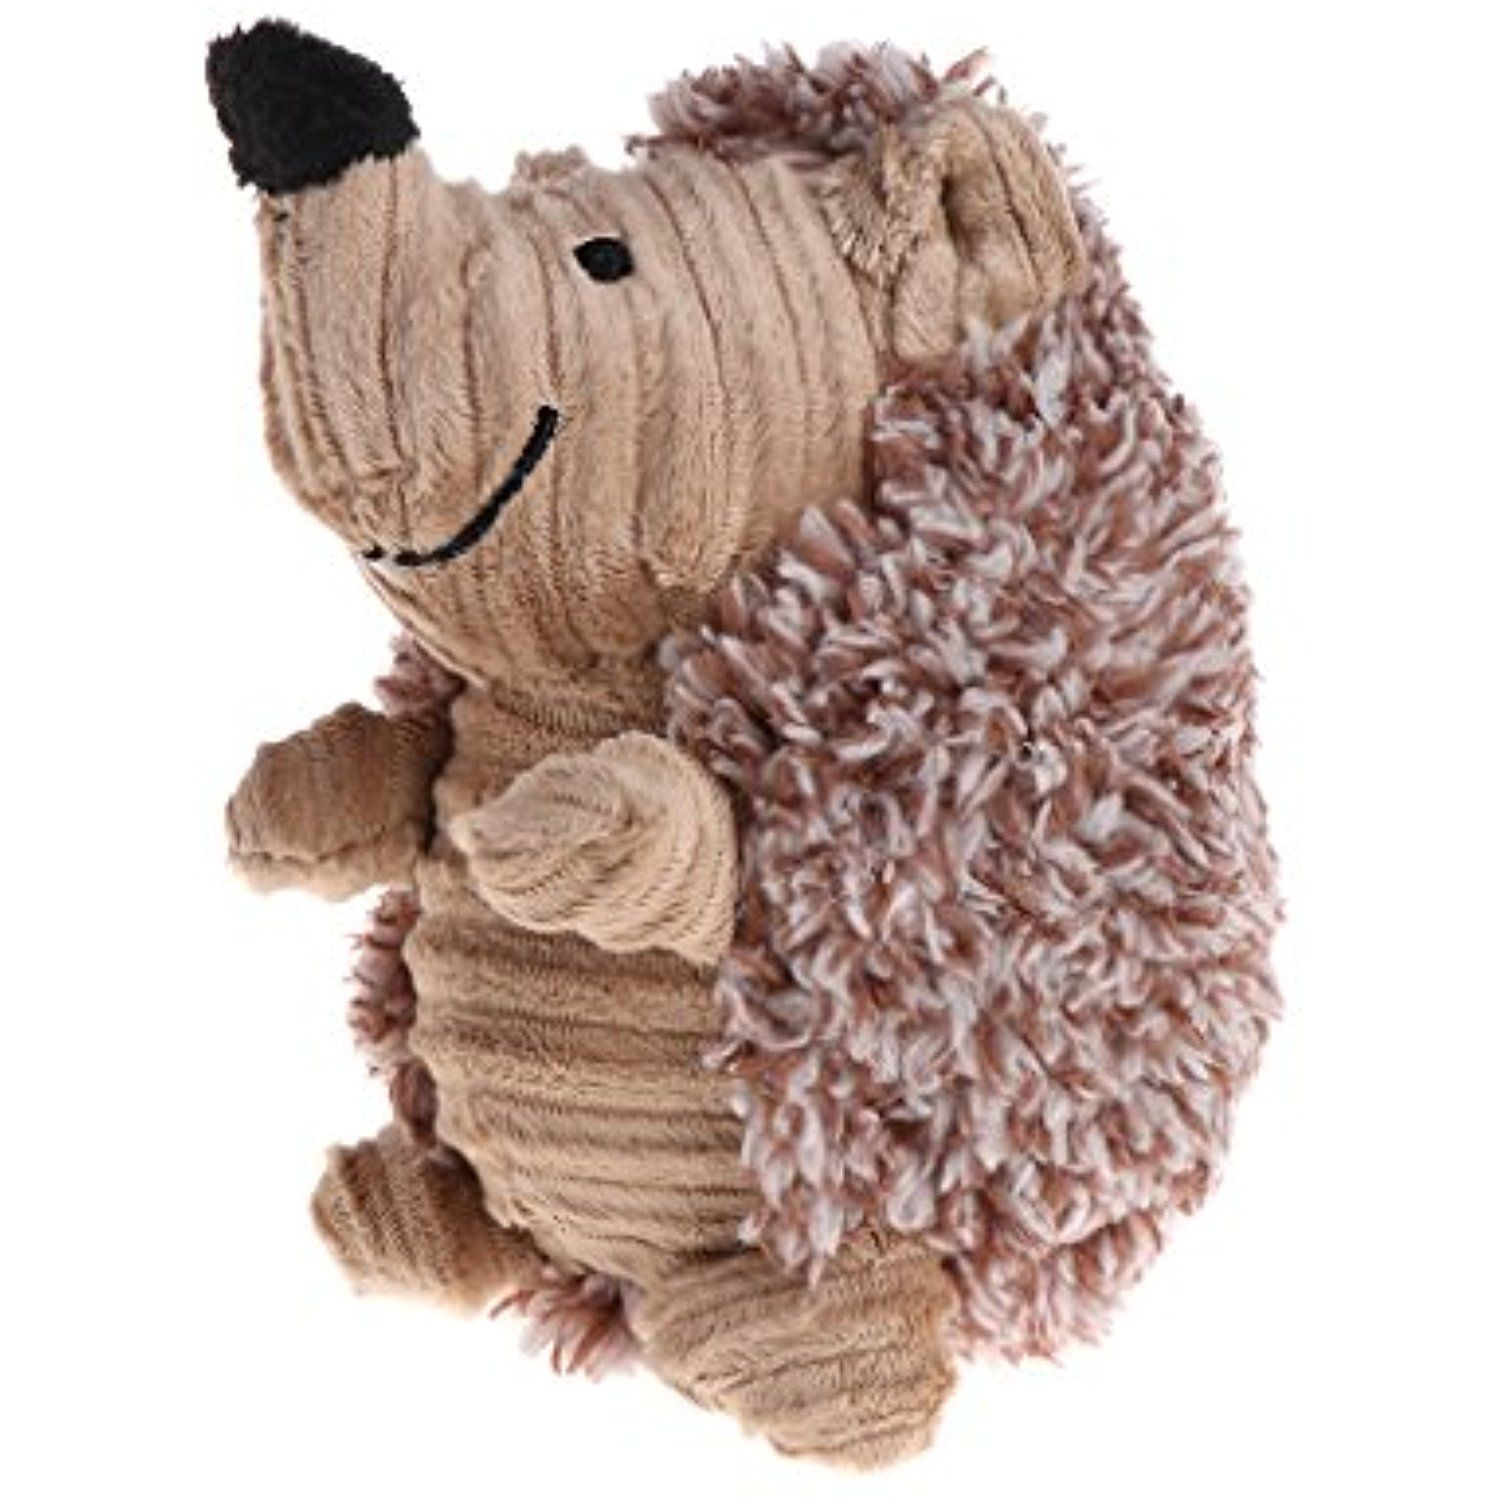 Biunnee Pet Dog Squeaky Hedgehog Plush Toy Squeaker Sound Puppy